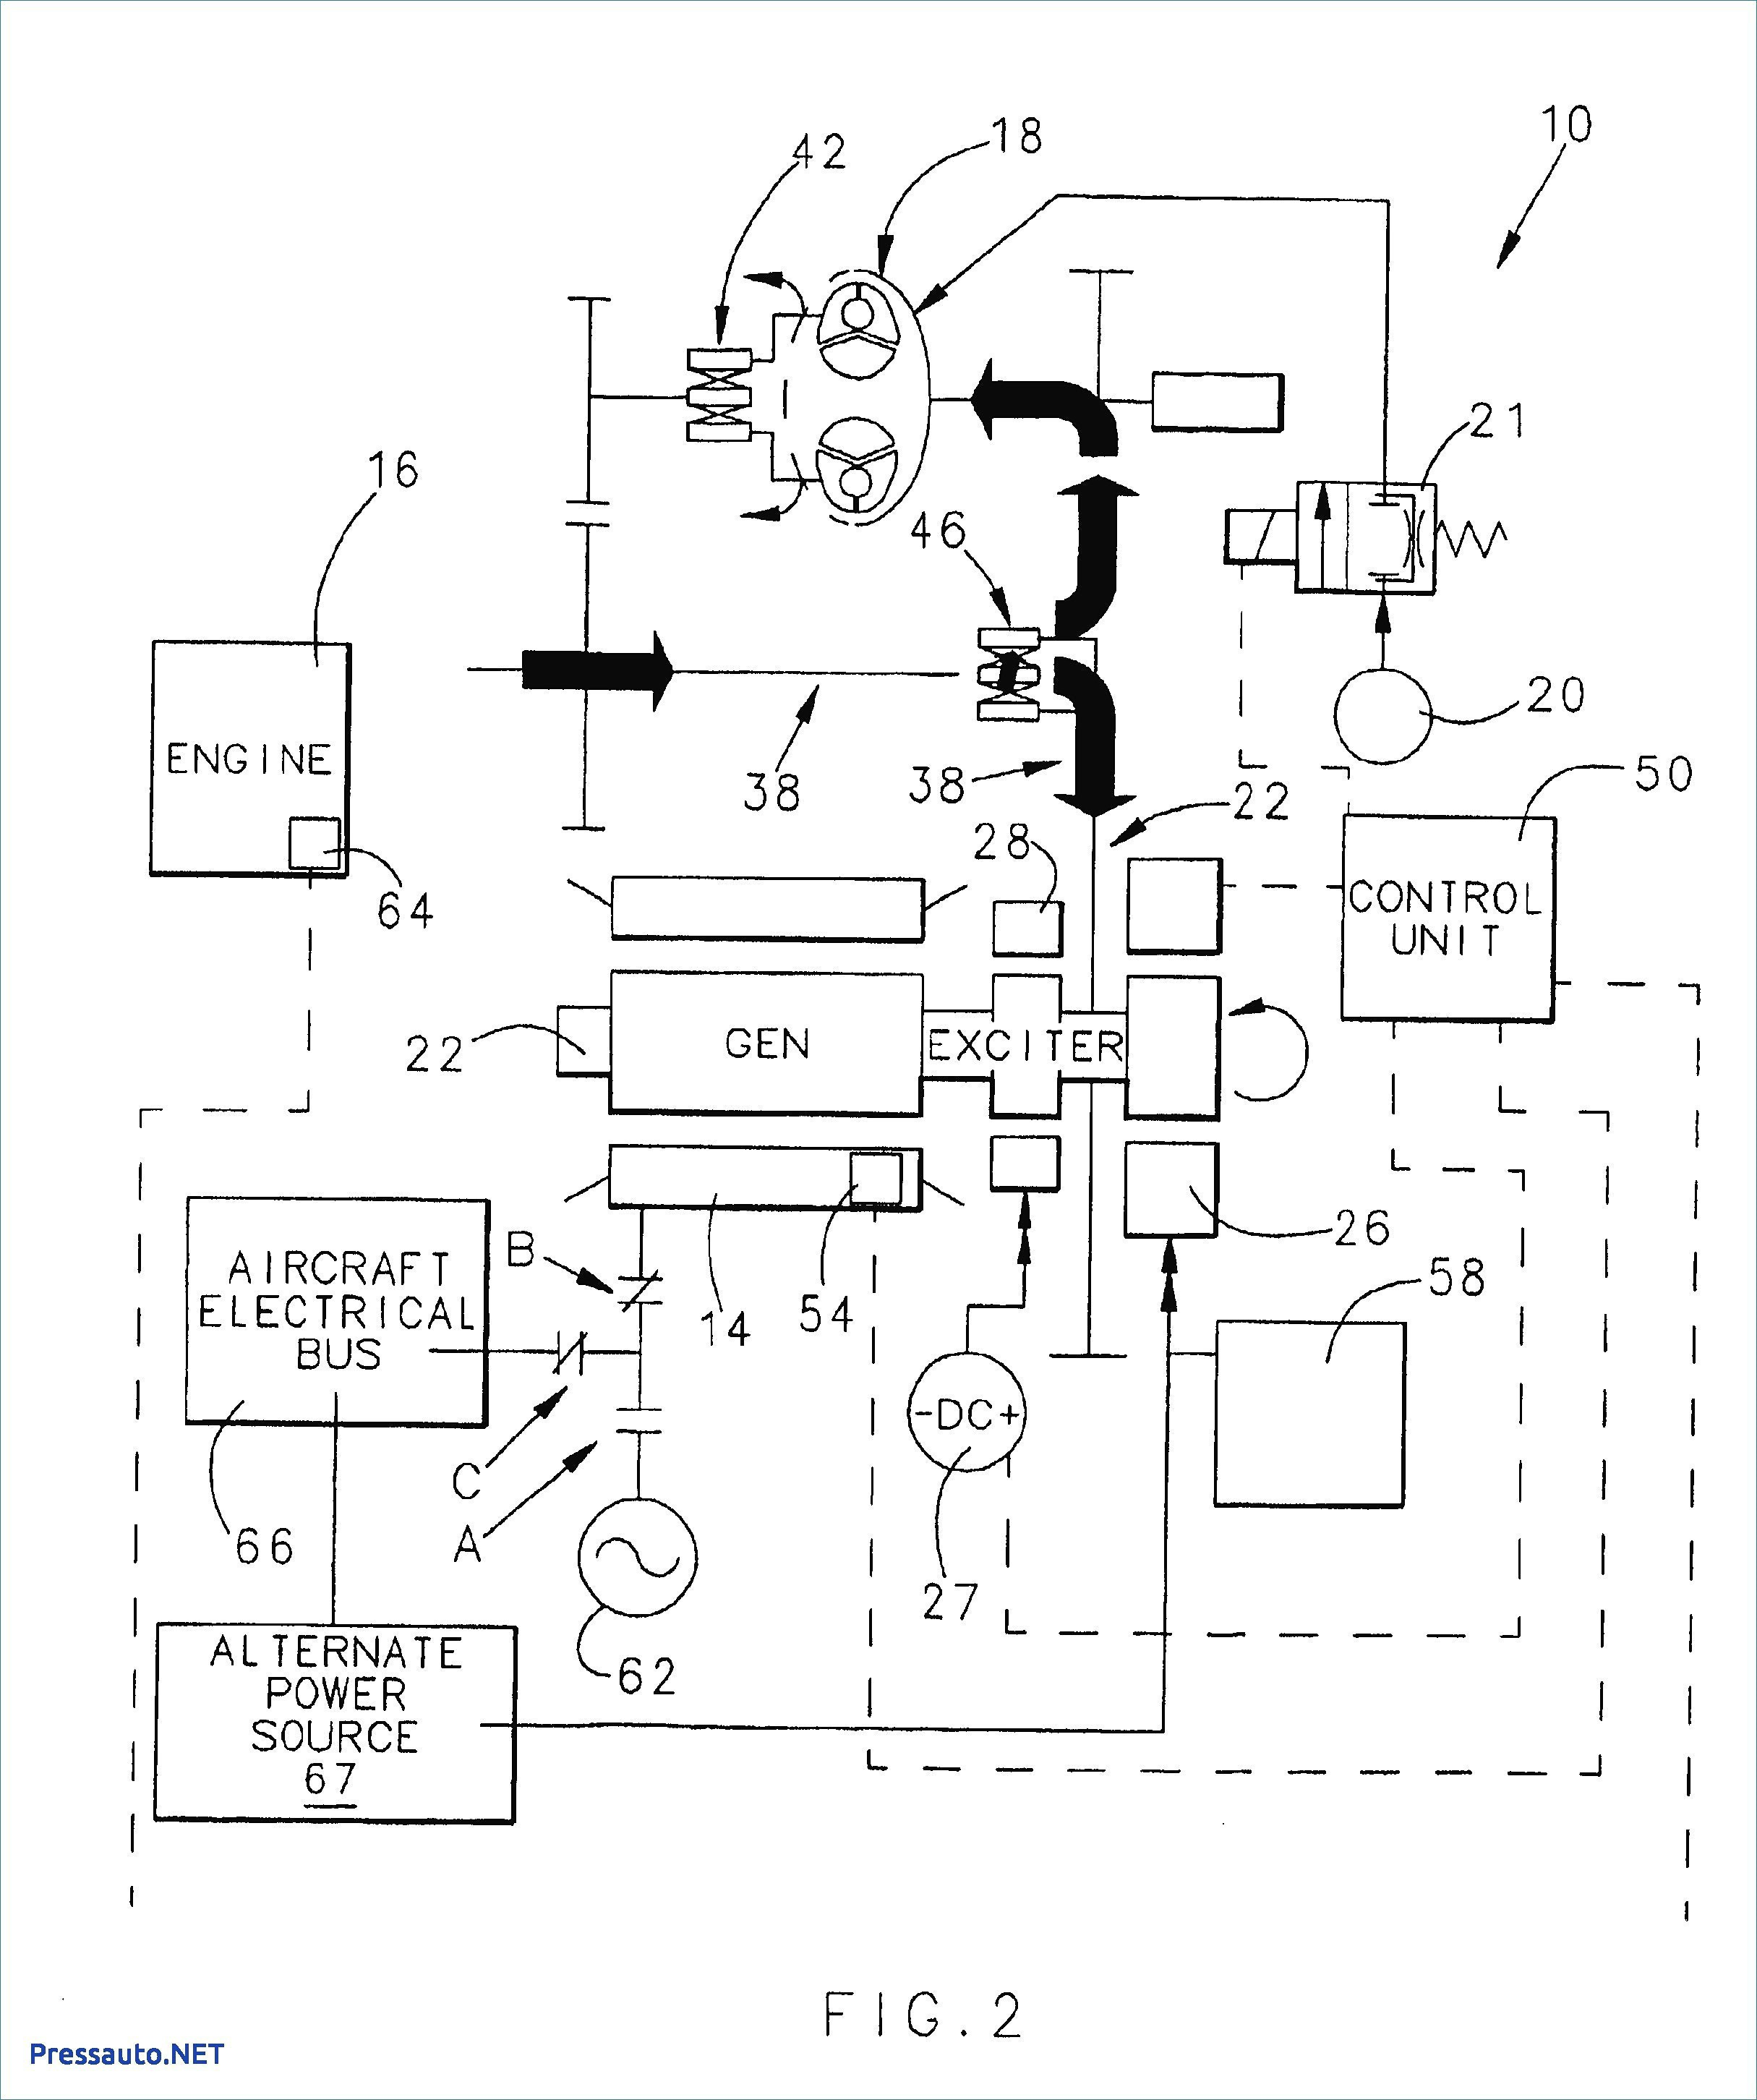 2007 Buick Lucerne Engine Diagram 2003 Buick Century Ignition Wiring Diagram Buick Wiring Diagrams Of 2007 Buick Lucerne Engine Diagram